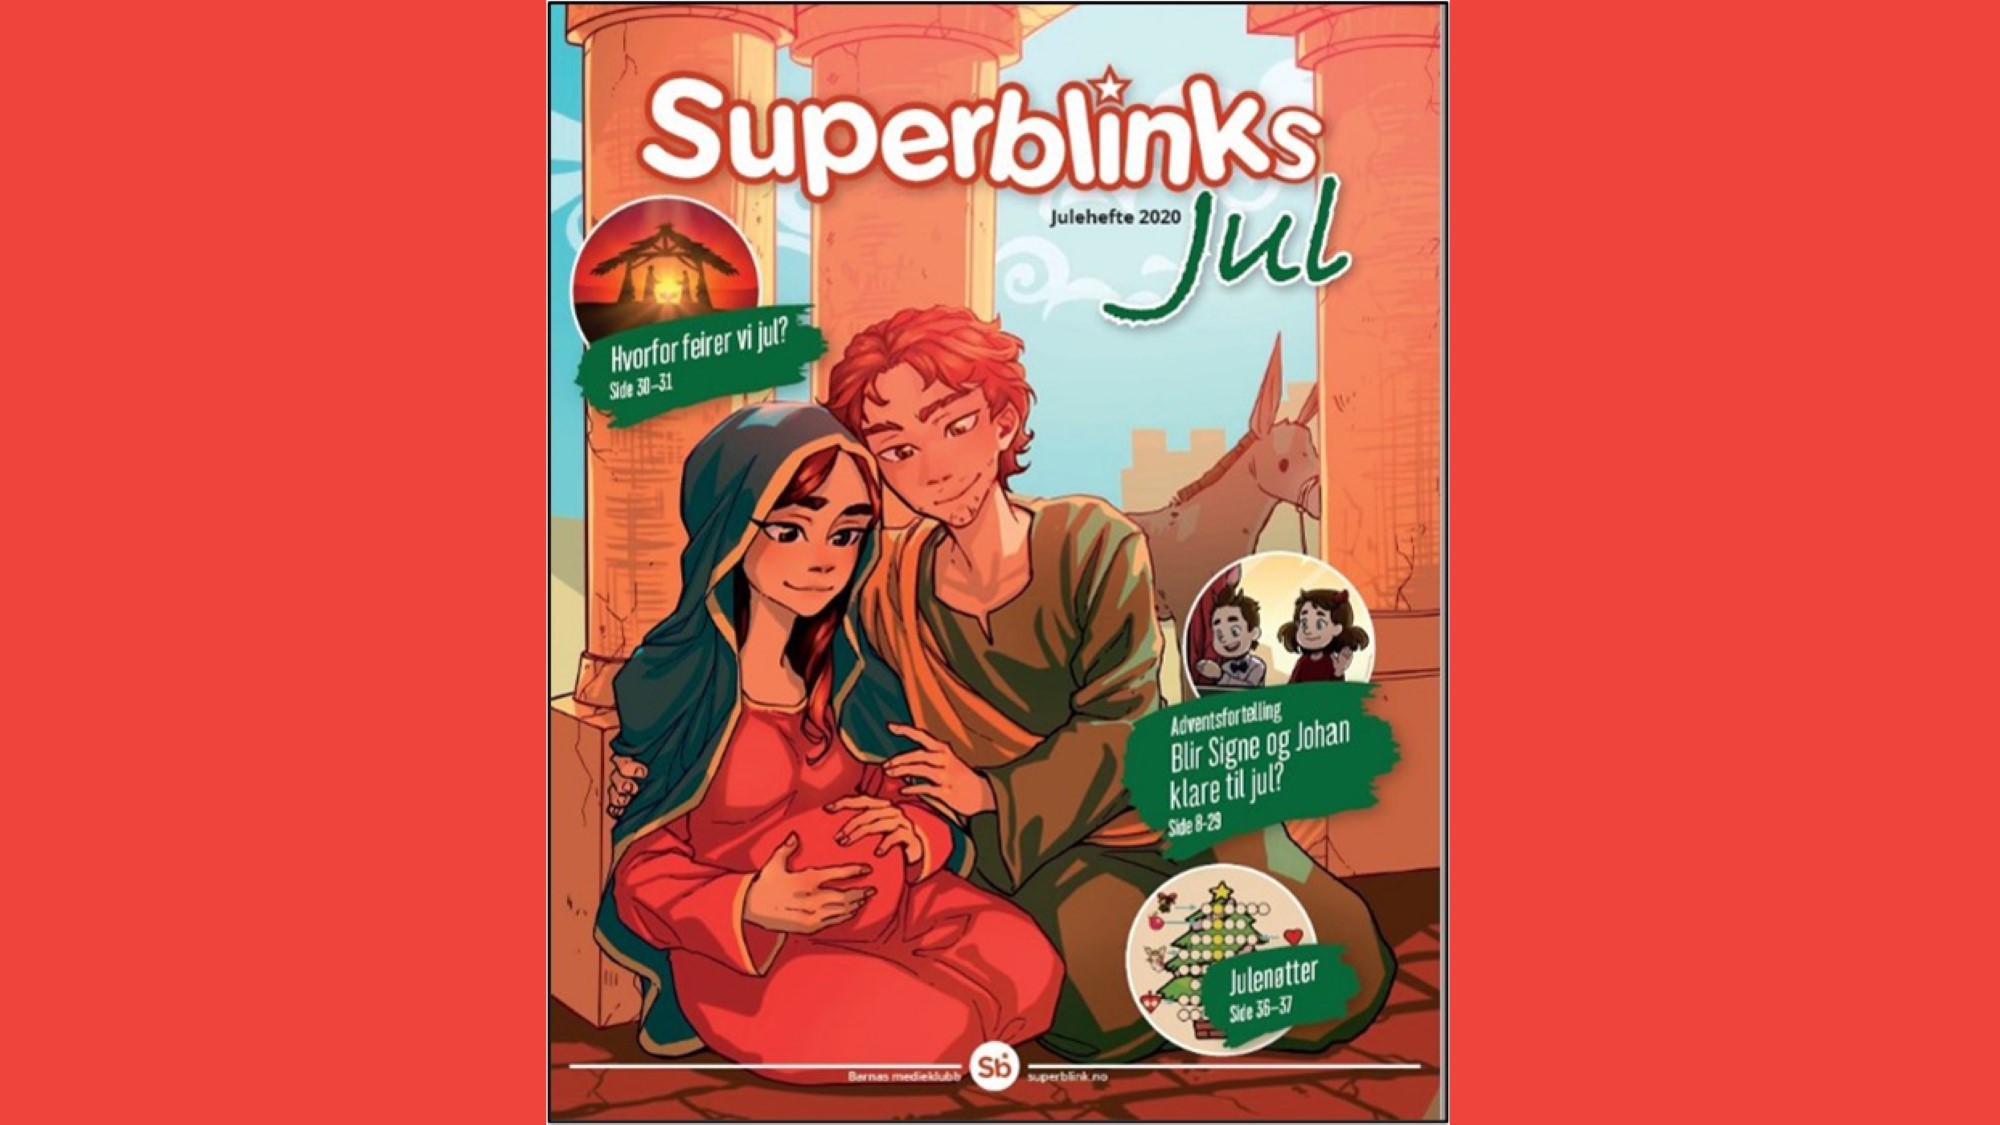 Superblinks jul